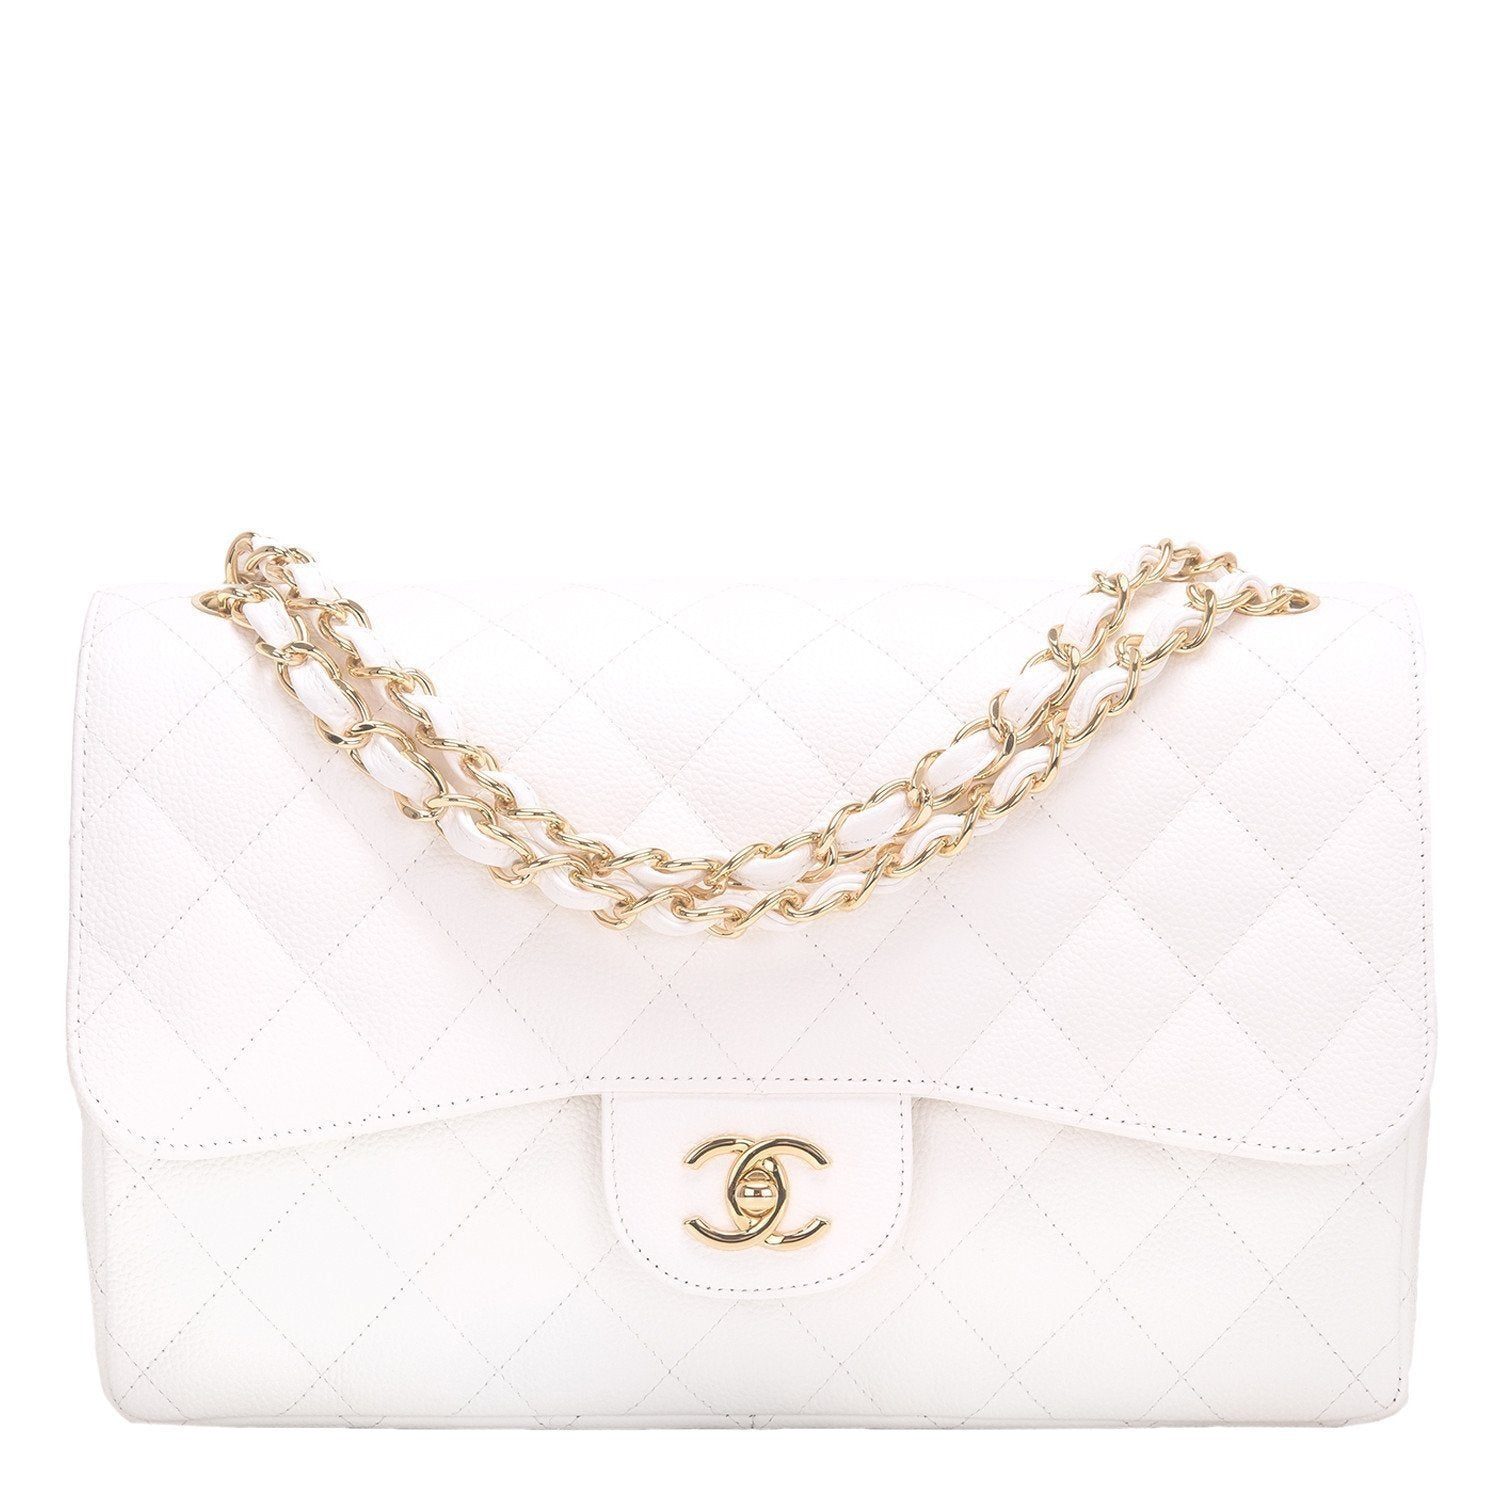 Chanel White Quilted Caviar Jumbo Classic Flap Bag – Madison Avenue ... 3aad7ecd28d86